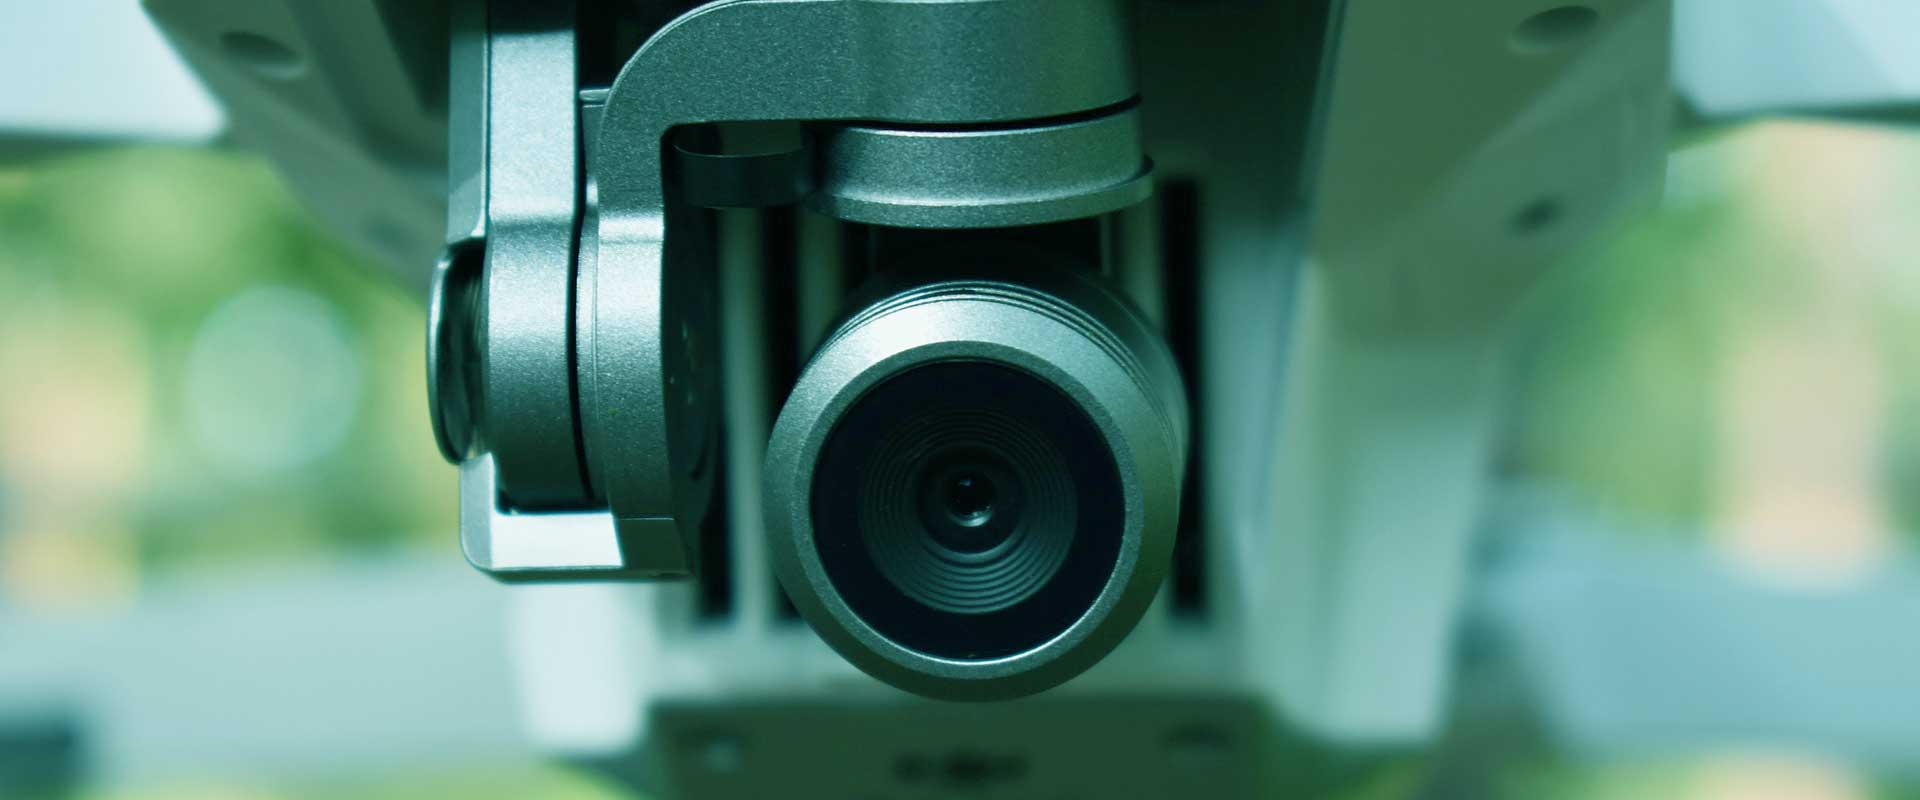 3 Advantages of Drone Use for Surveillance Purposes